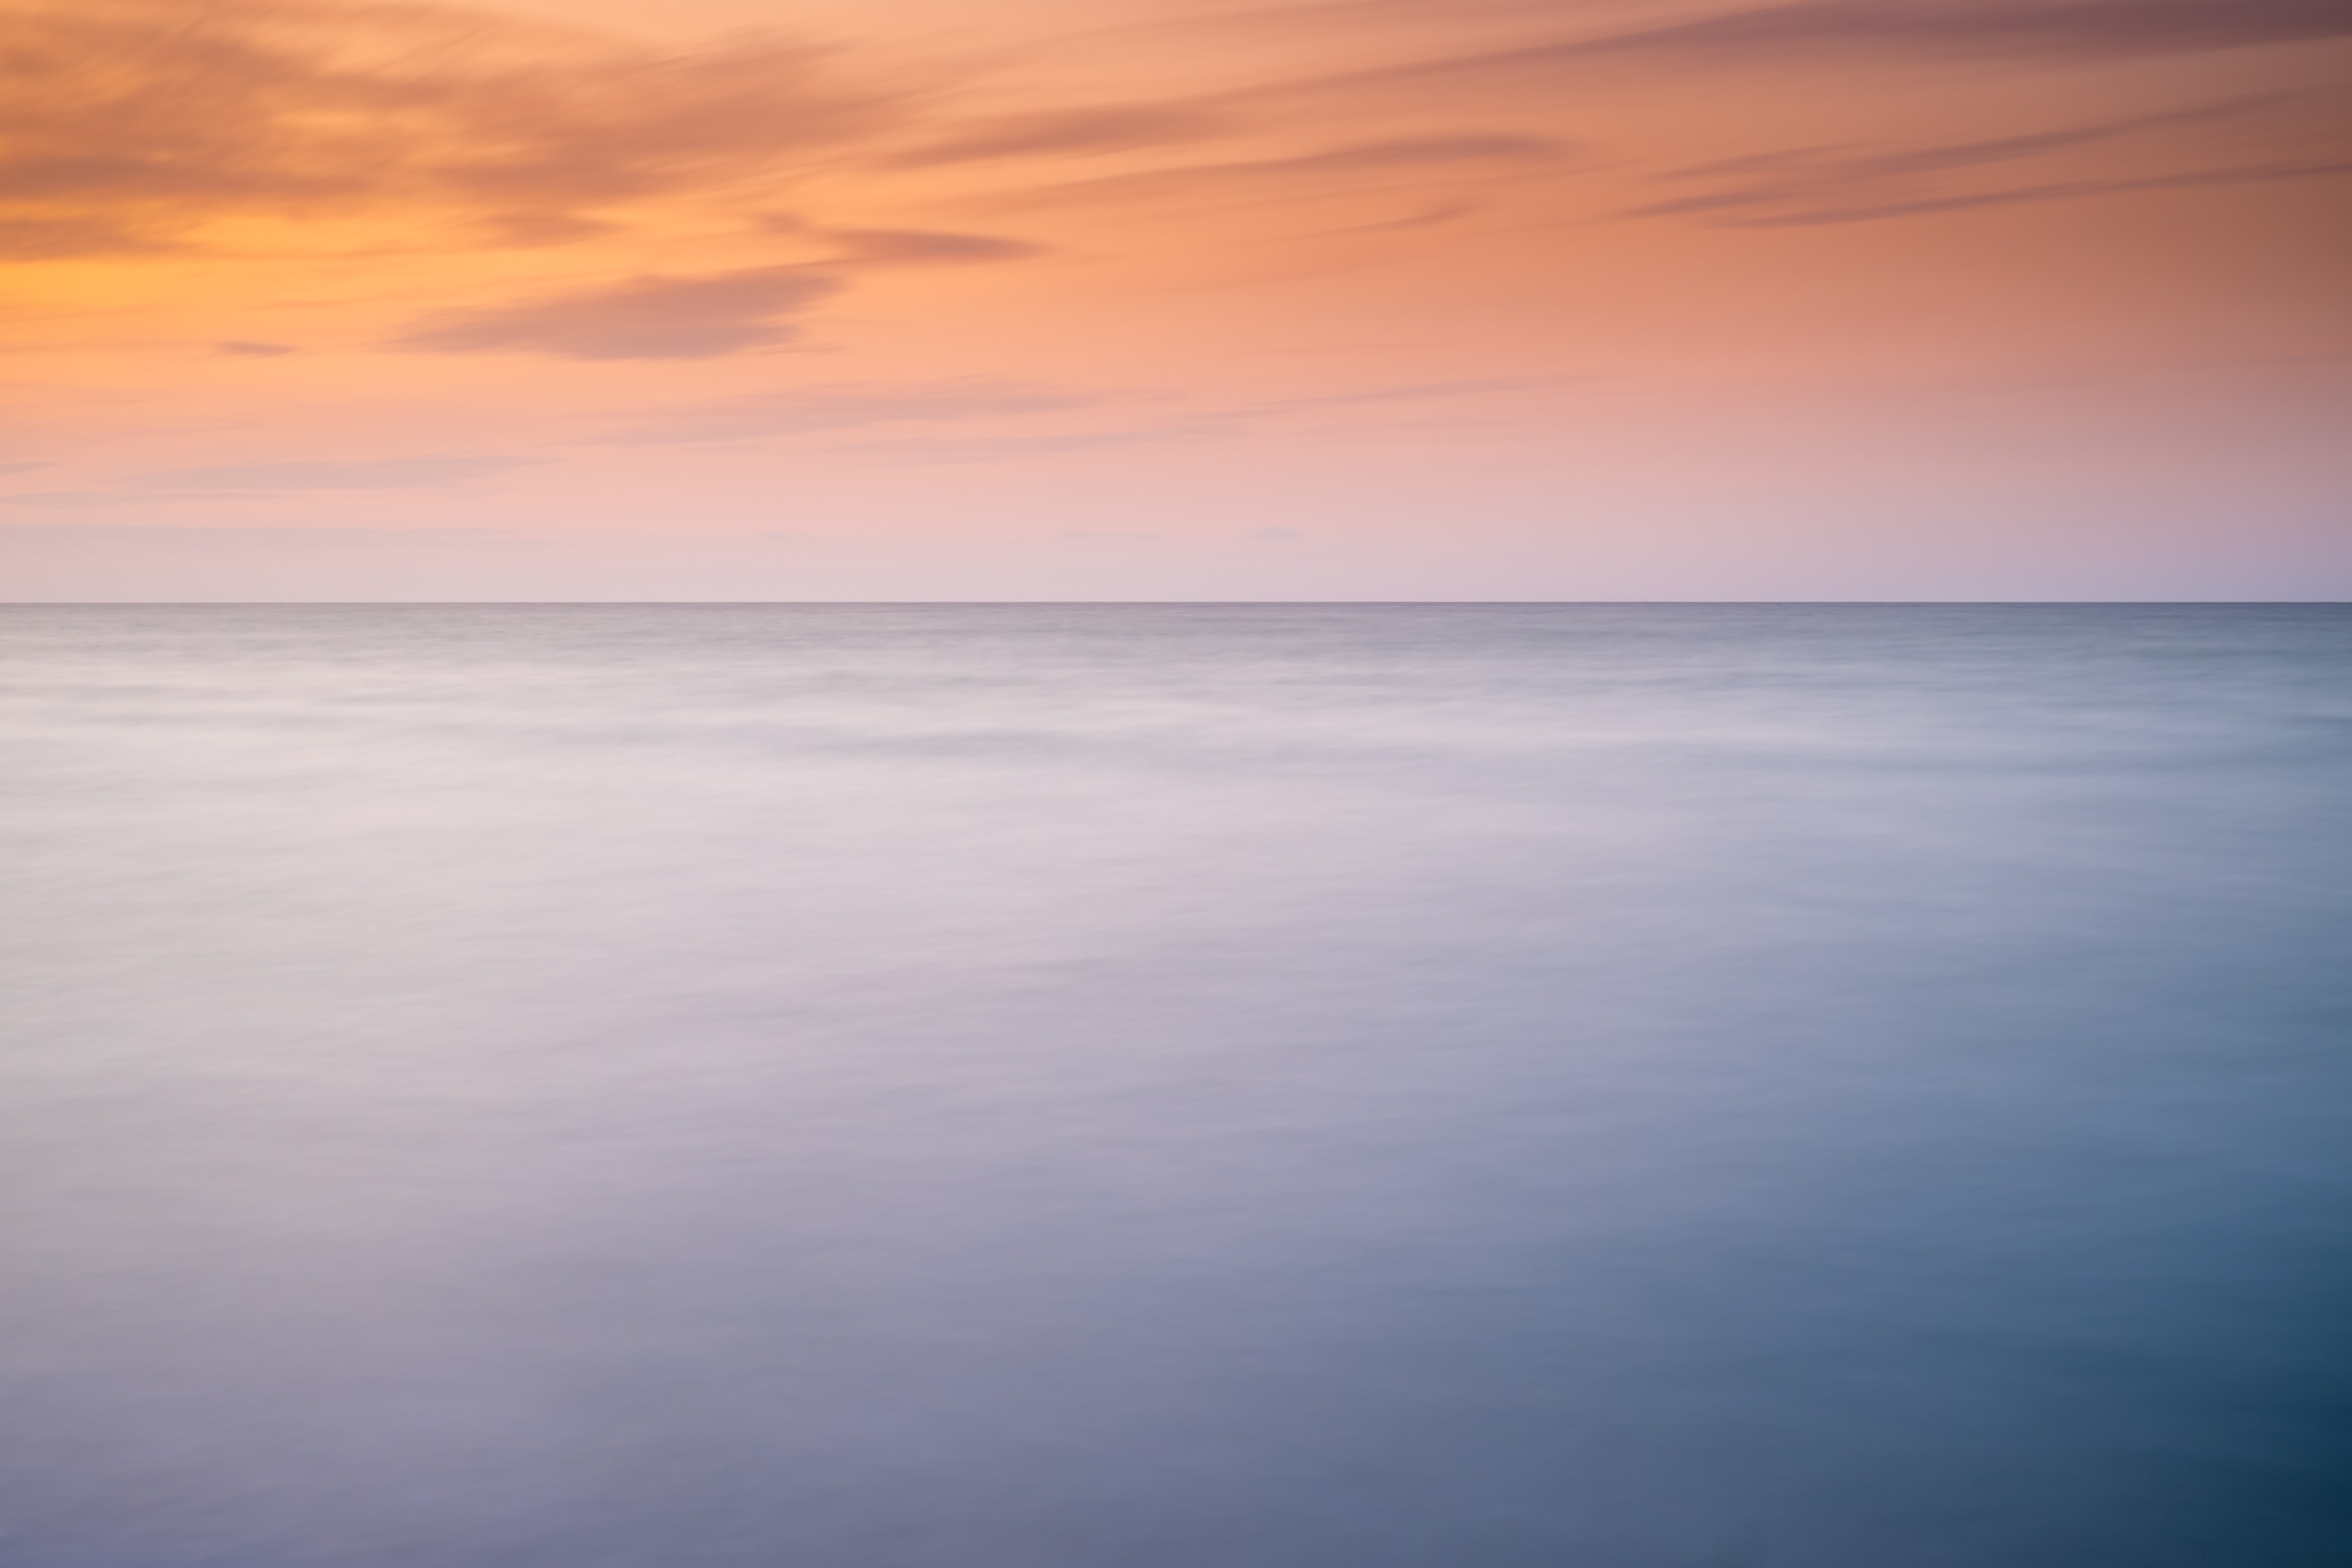 seascape photography of sunset